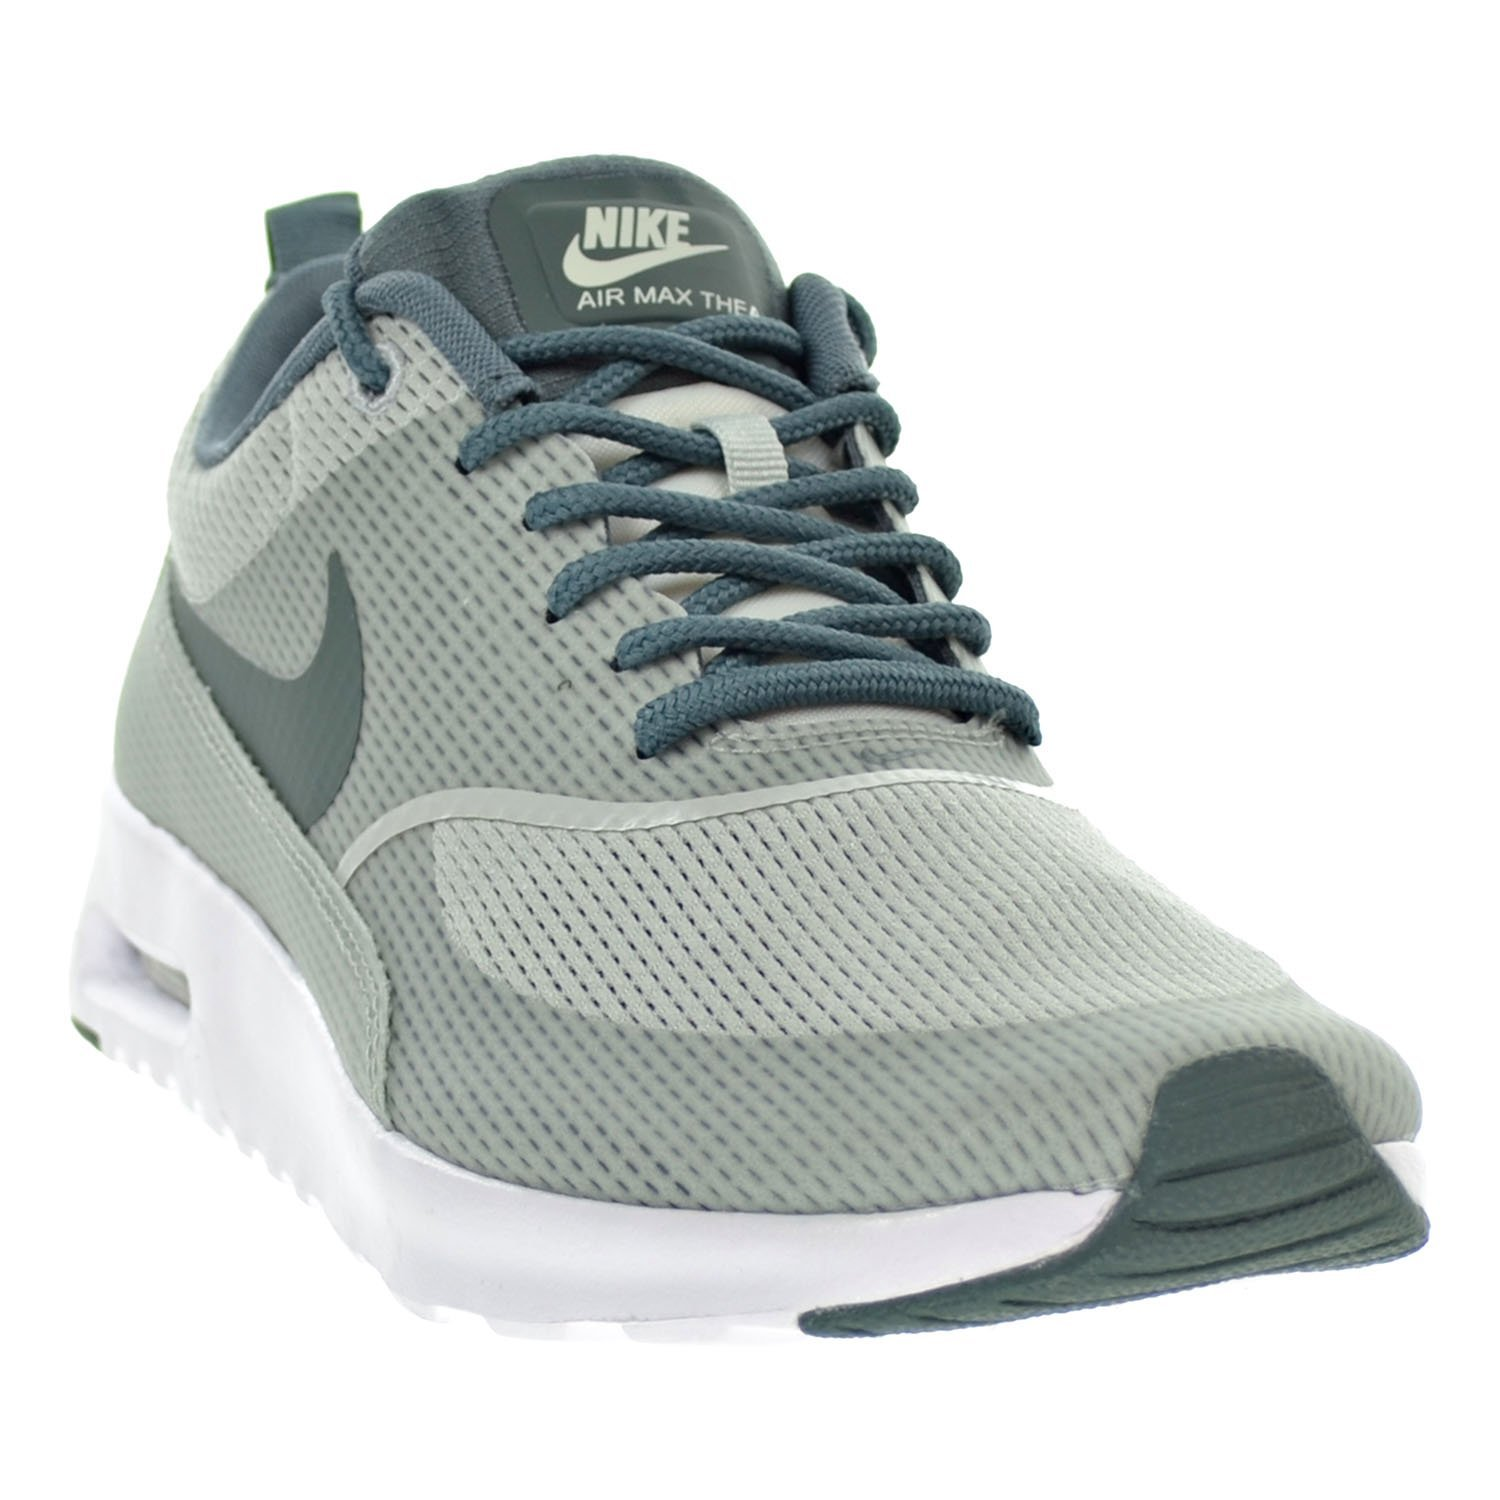 Nike Air Max Thea TXT Damesko Let  Nike Air Max Thea TXT Women's Shoes Light